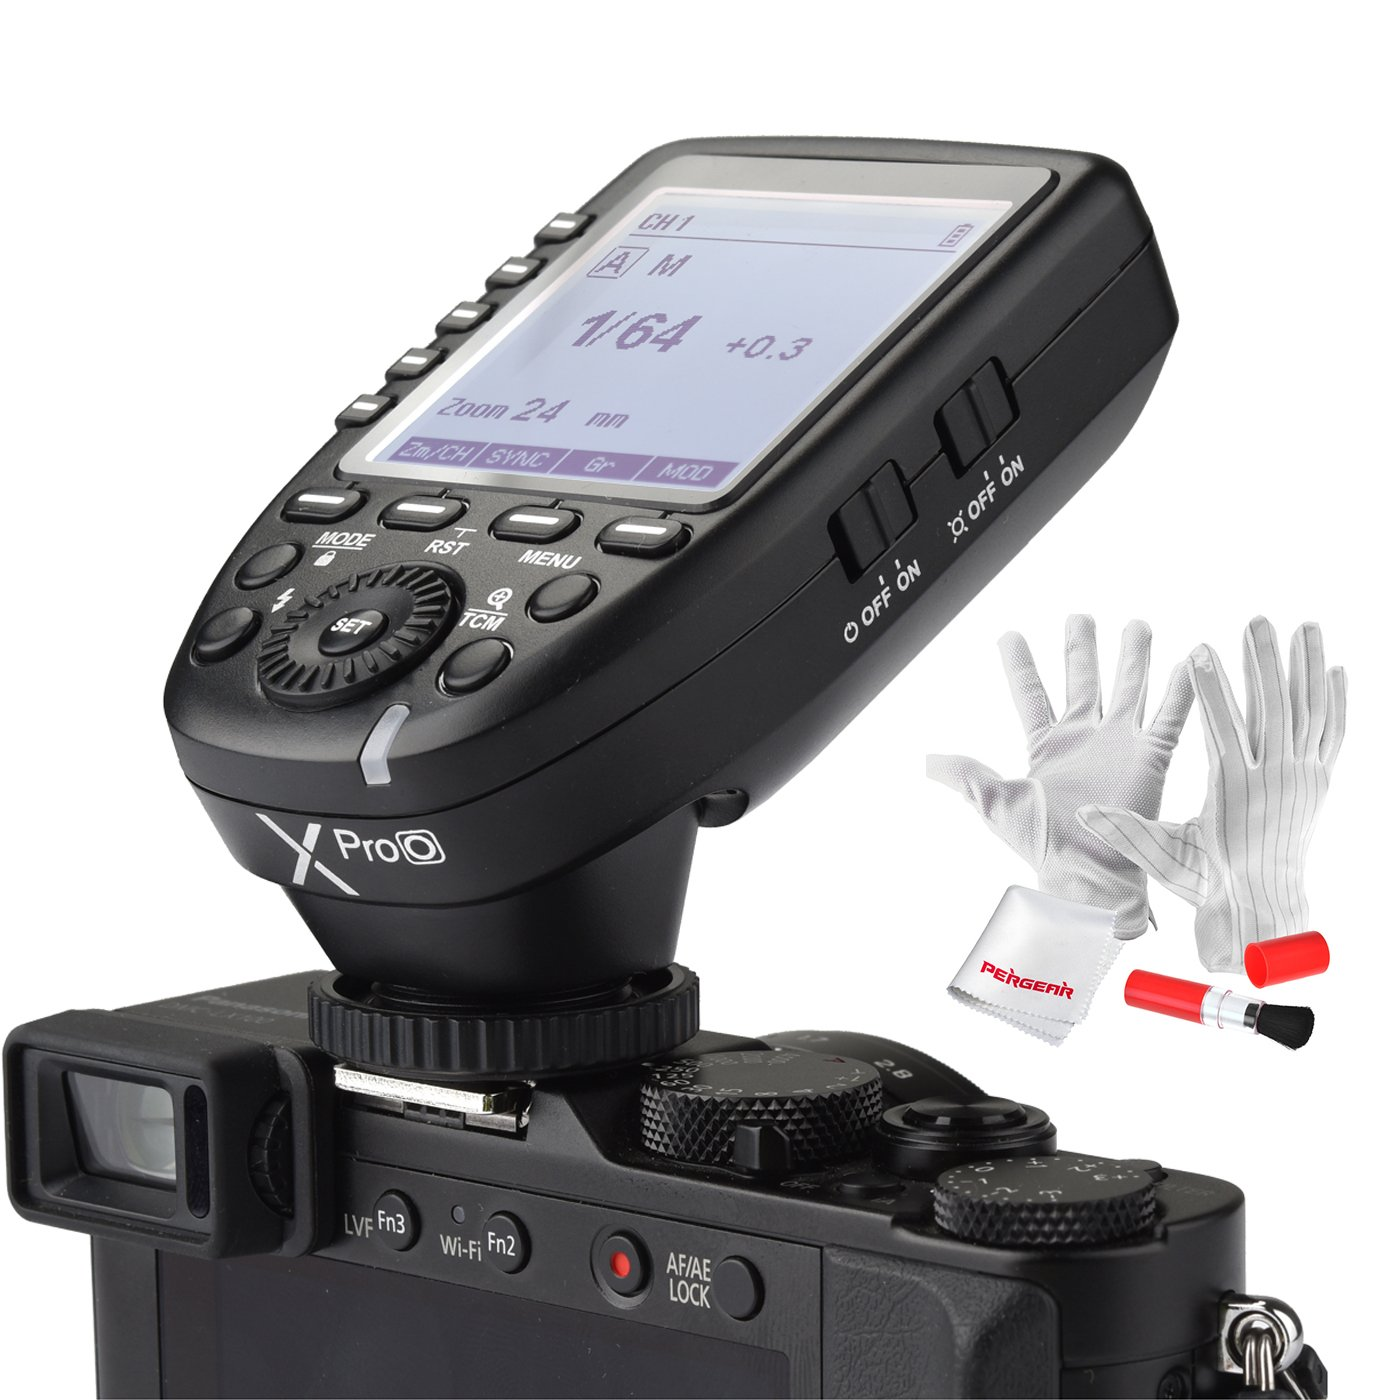 Godox Xpro-O for Olympus Panasonic TTL Wireless Flash Trigger 1/8000s HSS TTL-Convert-Manual Function Large Screen Slanted Design 5 Dedicated Group Buttons 11 Customizable Functions by Godox